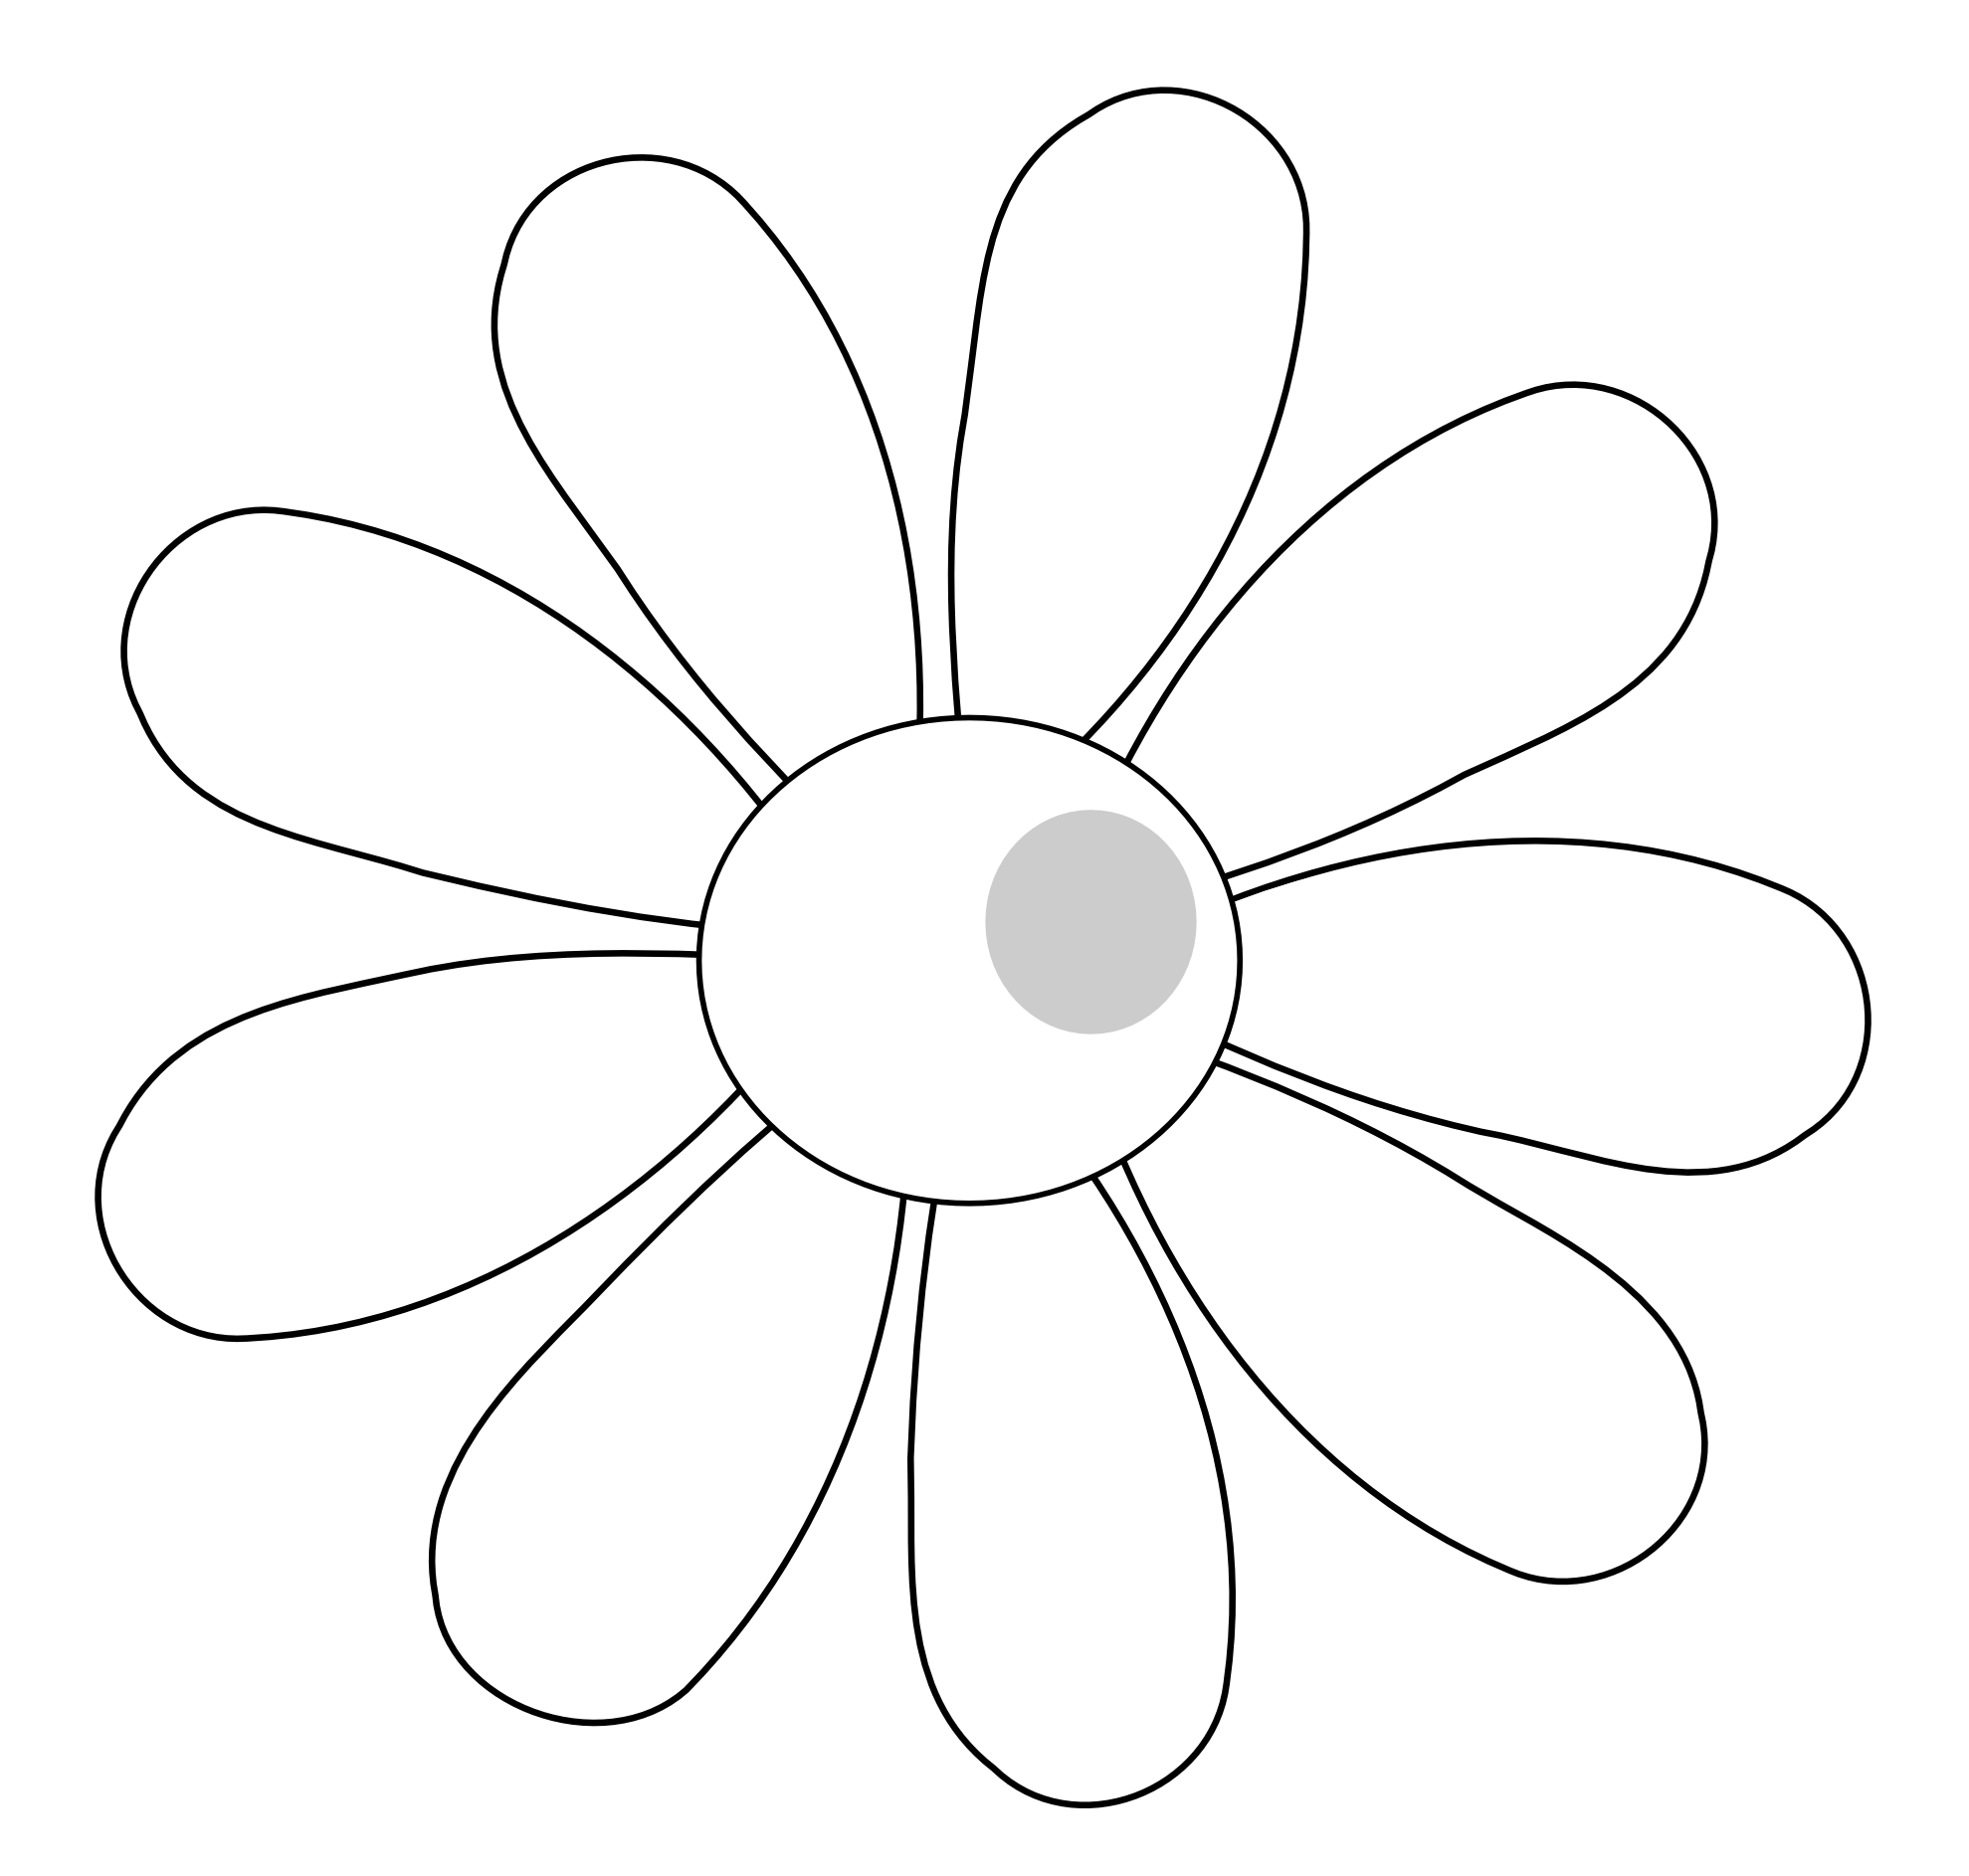 Flower clipart images black and white vector free Black And White Daisy Flower Clipart vector free